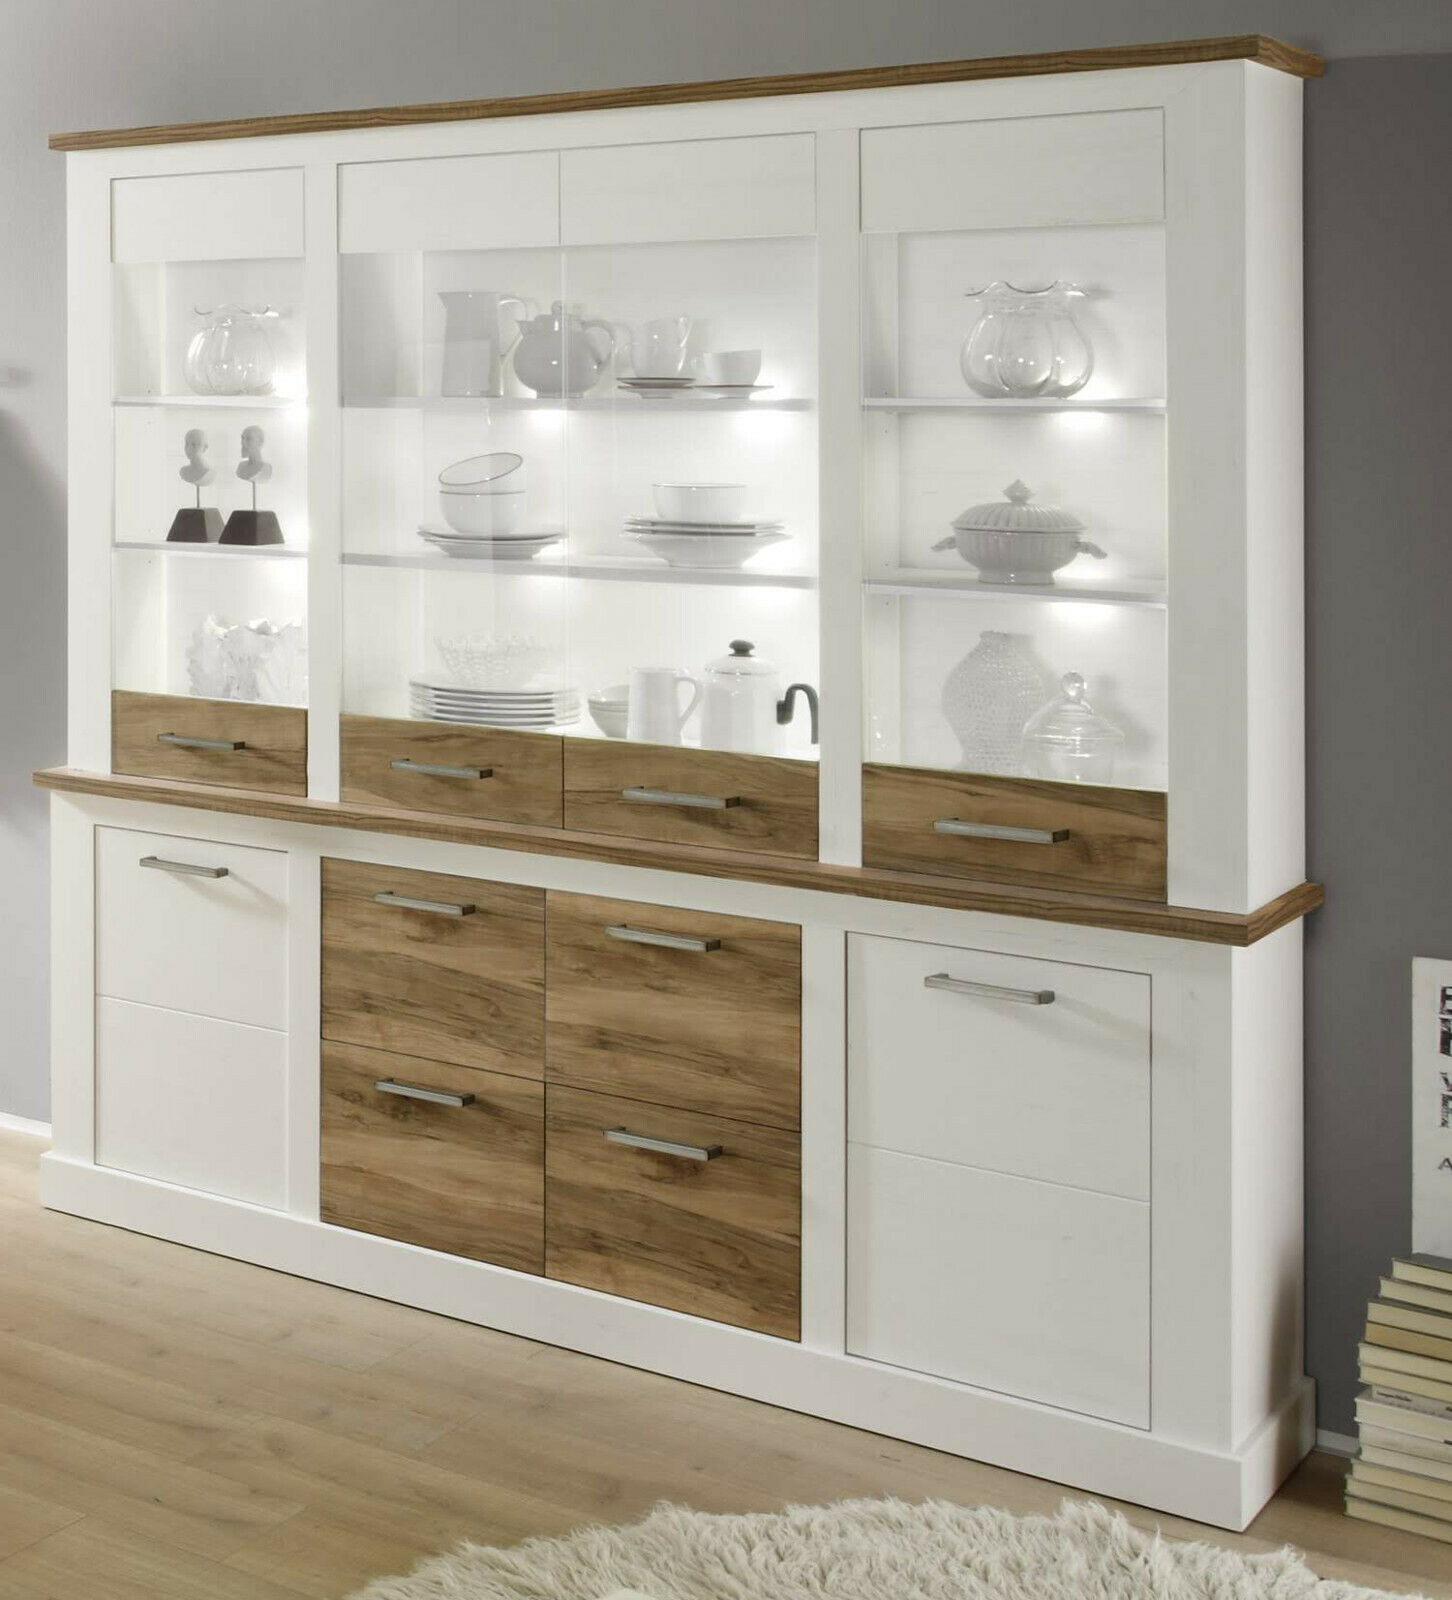 buffetschrank weiss pinie nussbaum anrichte landhaus schrank highboard toronto eur 674 99. Black Bedroom Furniture Sets. Home Design Ideas